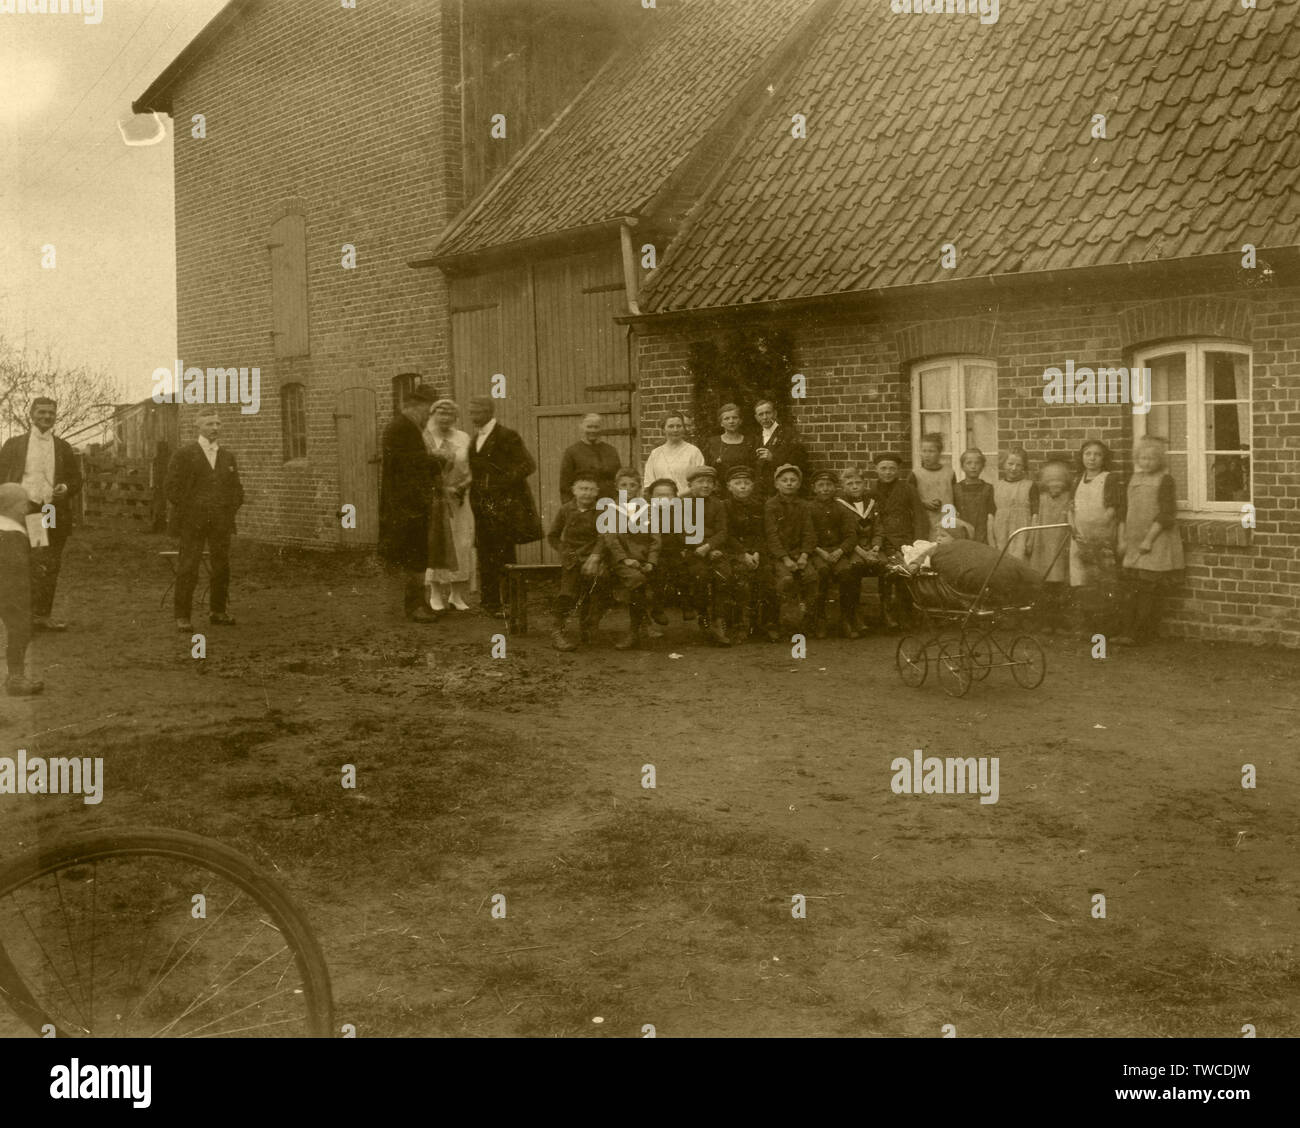 1900's This German photograph appears to show a small village school wth both the pupils and teachers/parents. - Stock Image